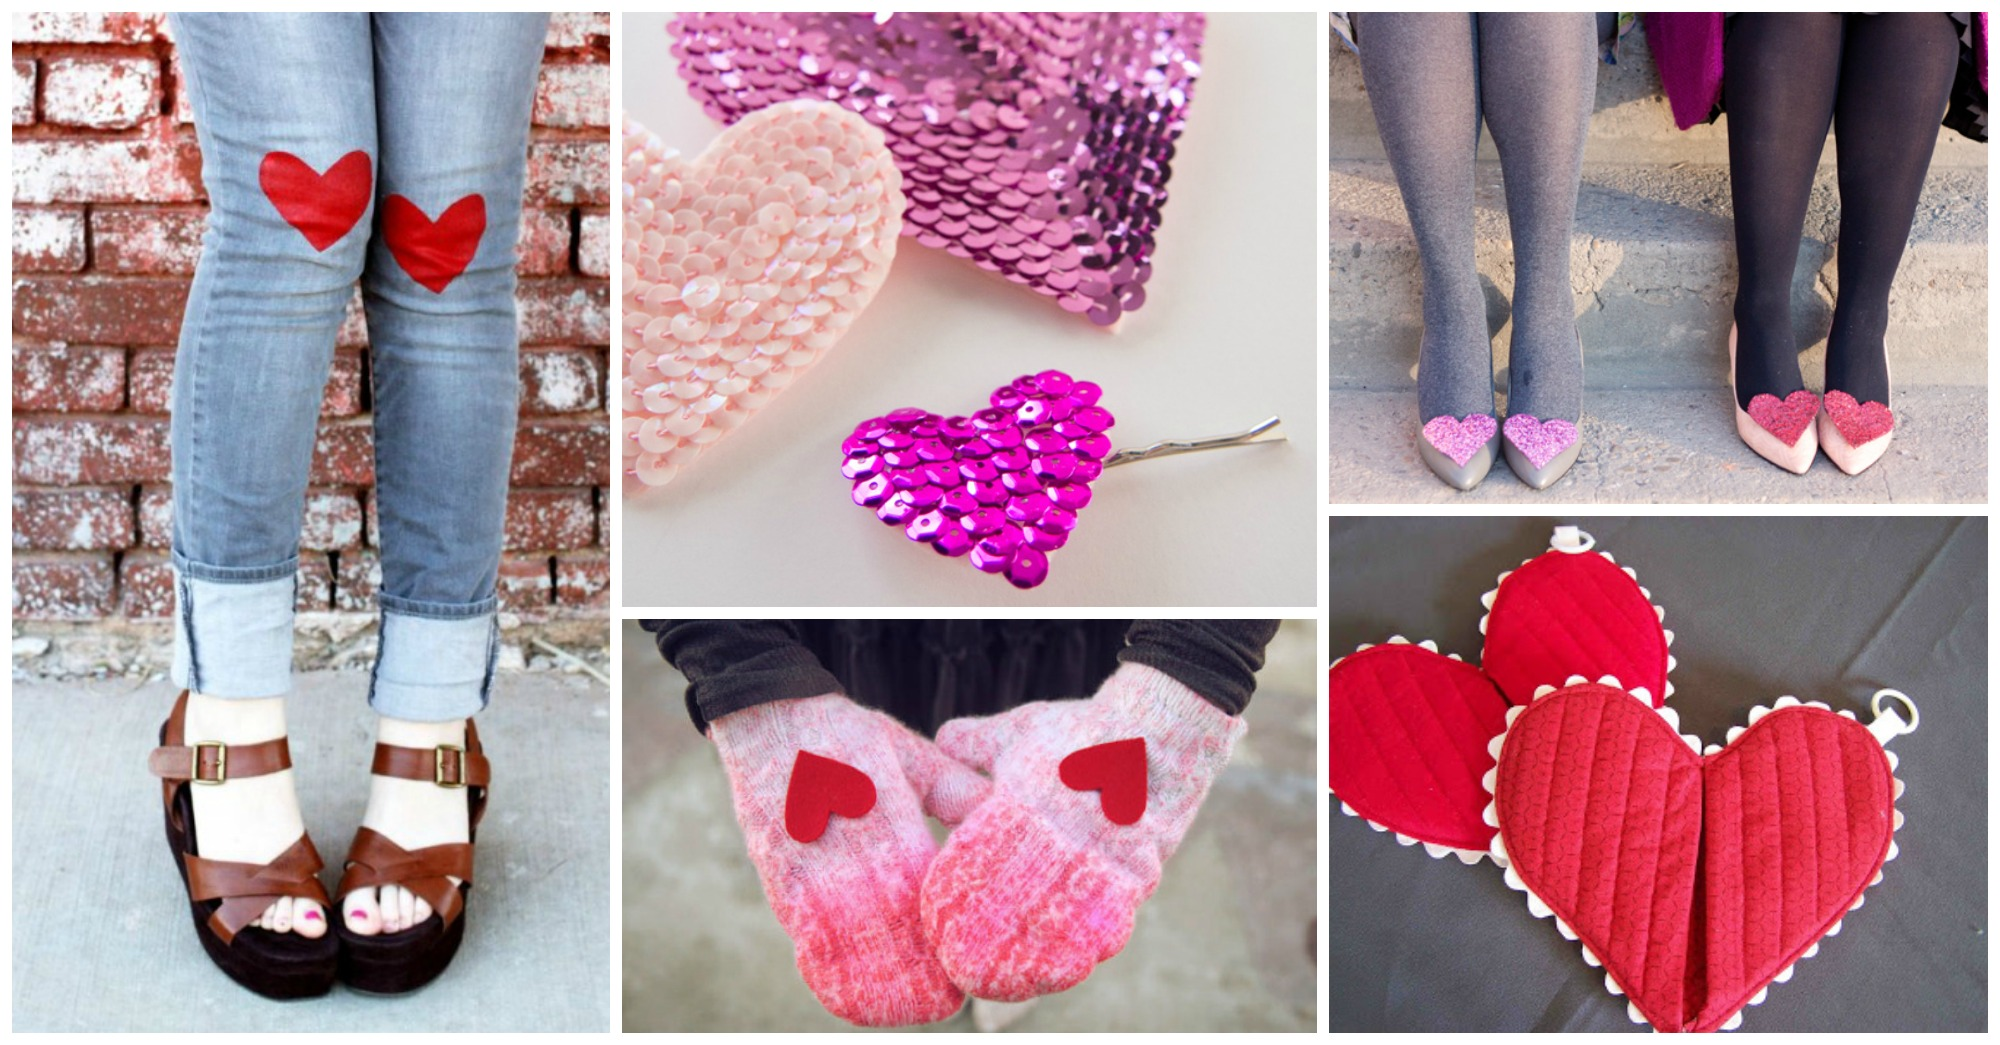 16 STUPENDOUS DIY IDEAS FOR VALENTINE'S DAY